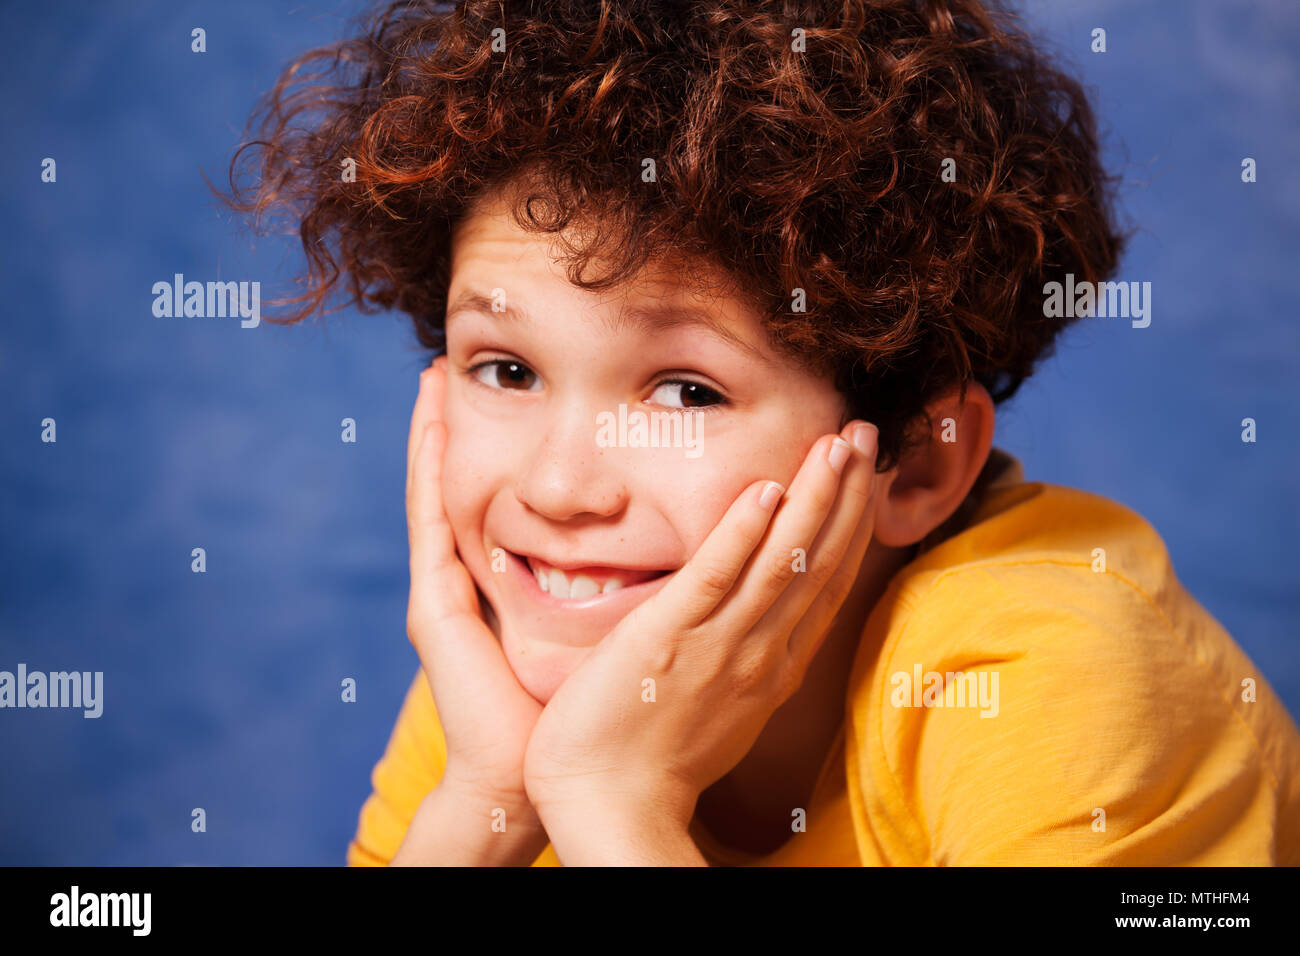 Happy preteen boy with curly hair resting chin on hands and looking at camera - Stock Image